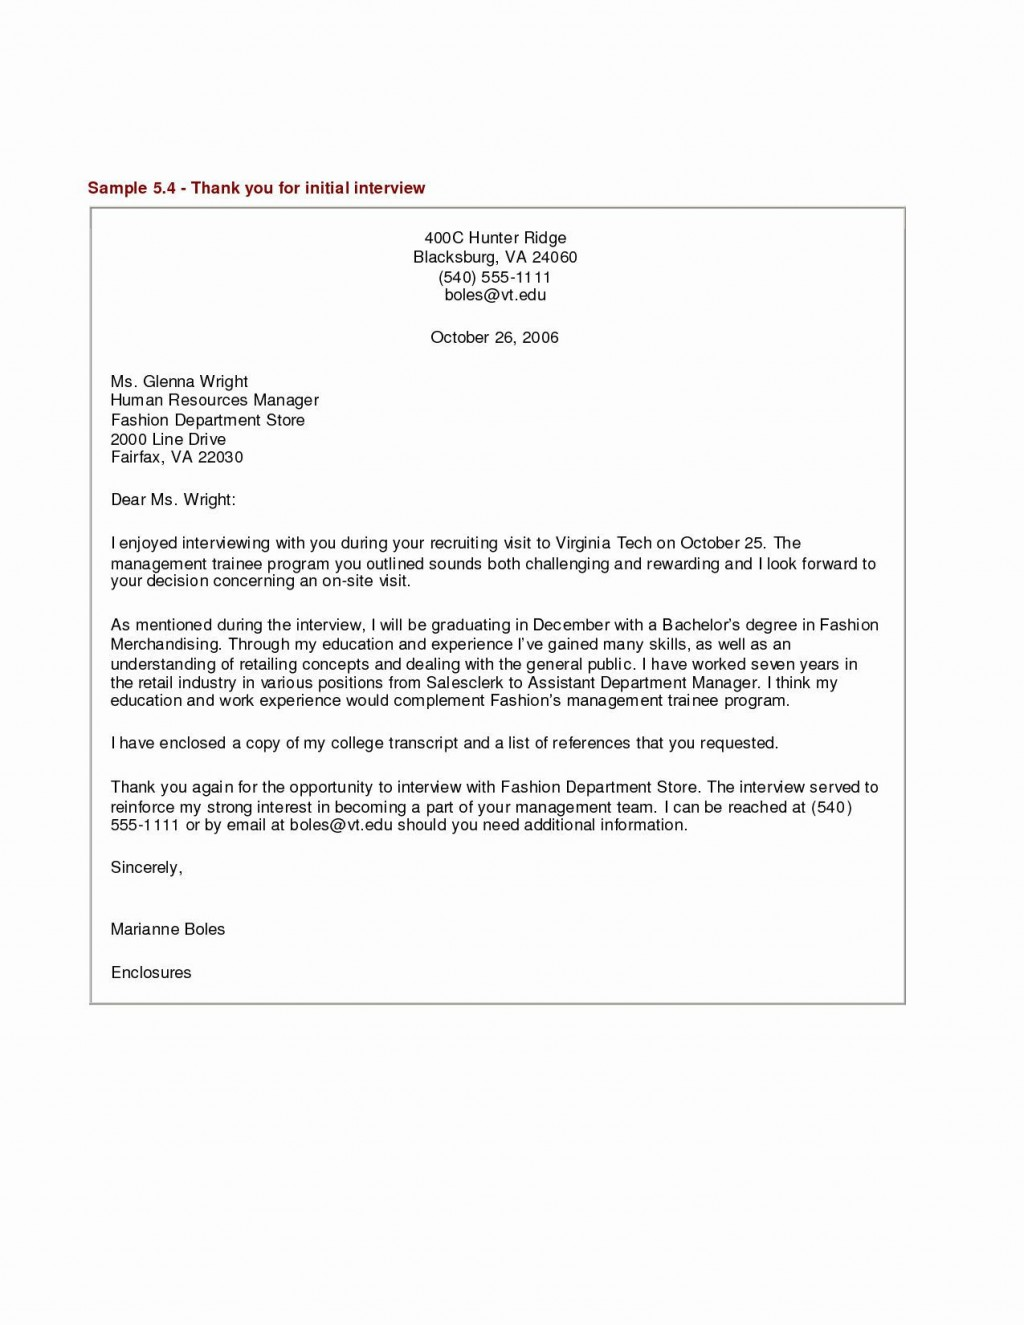 000 Marvelou Thank You Note Template Medical School Interview Inspiration  Letter SampleLarge